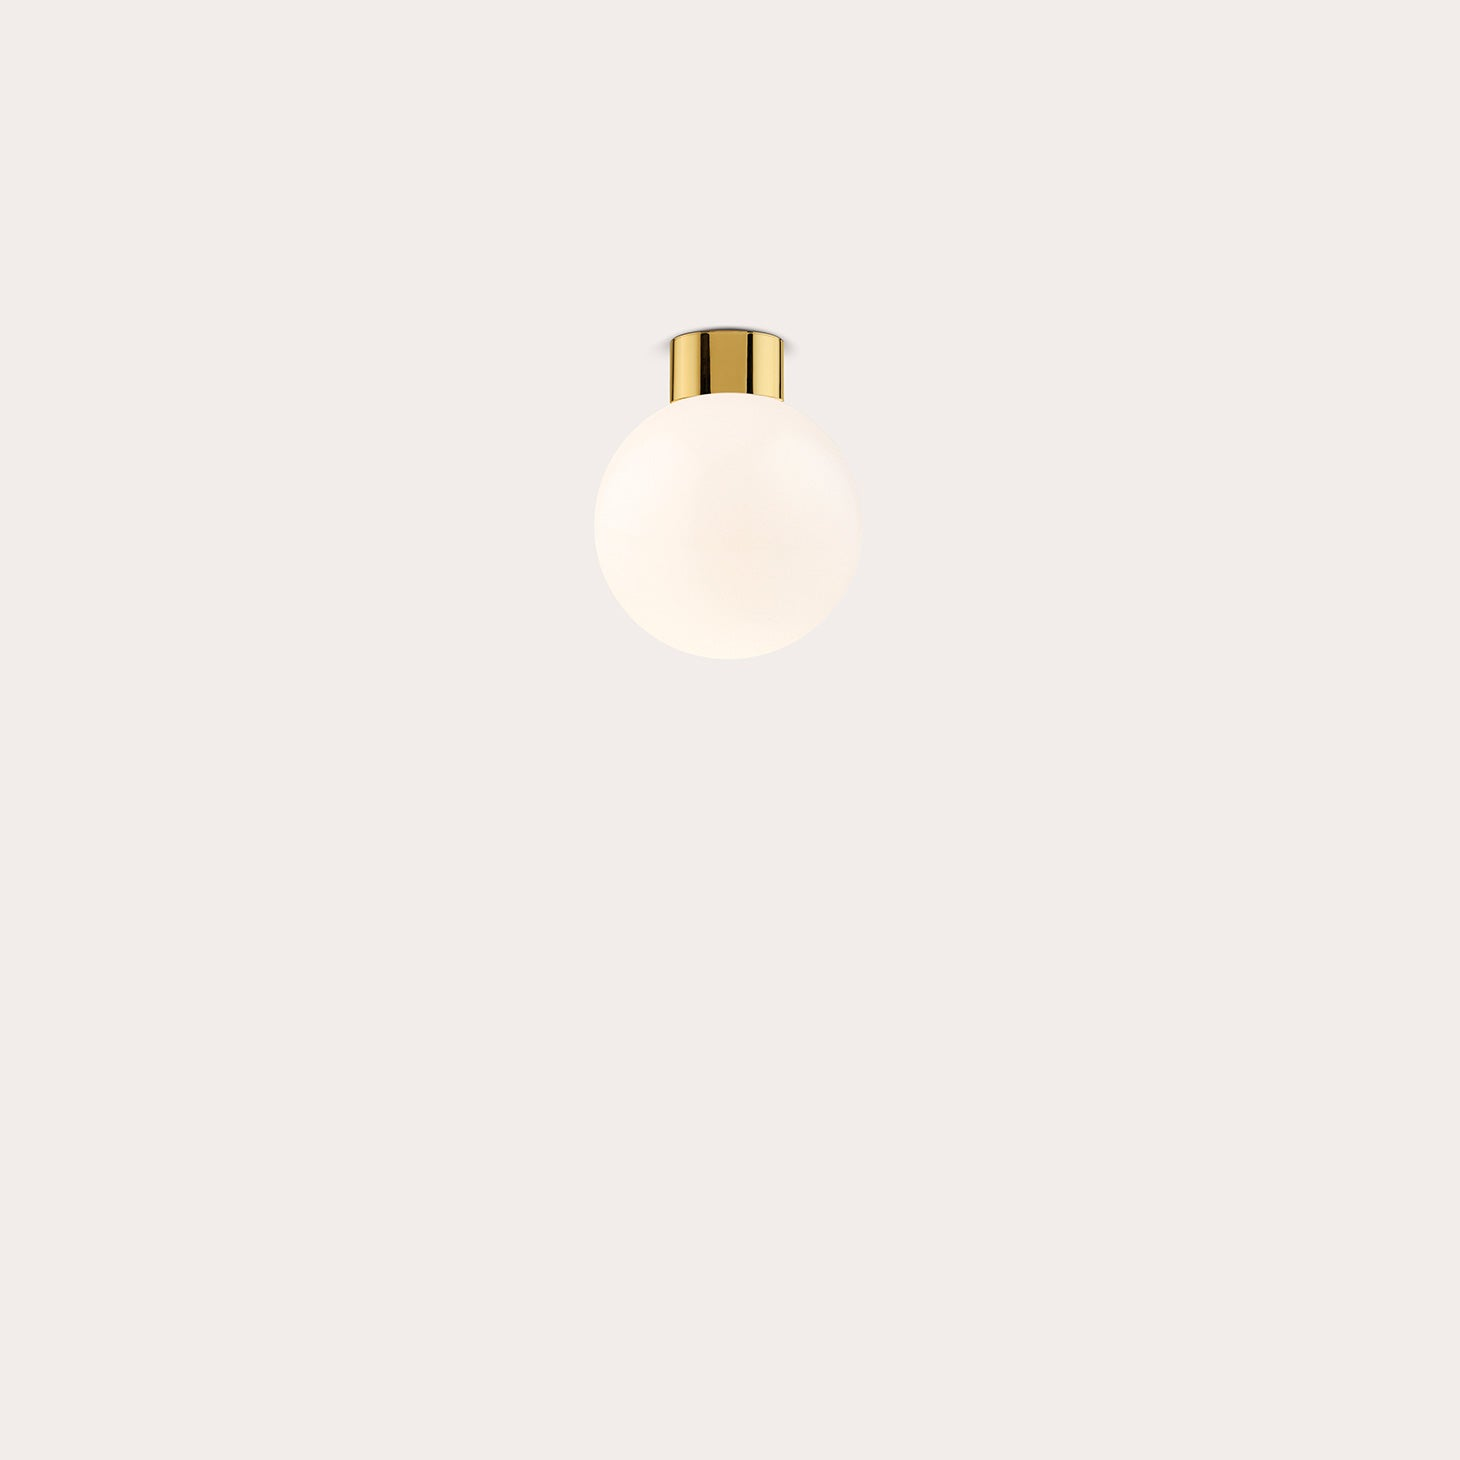 Sconce 150 Lighting Michael Anastassiades Designer Furniture Sku: 717-100-10071